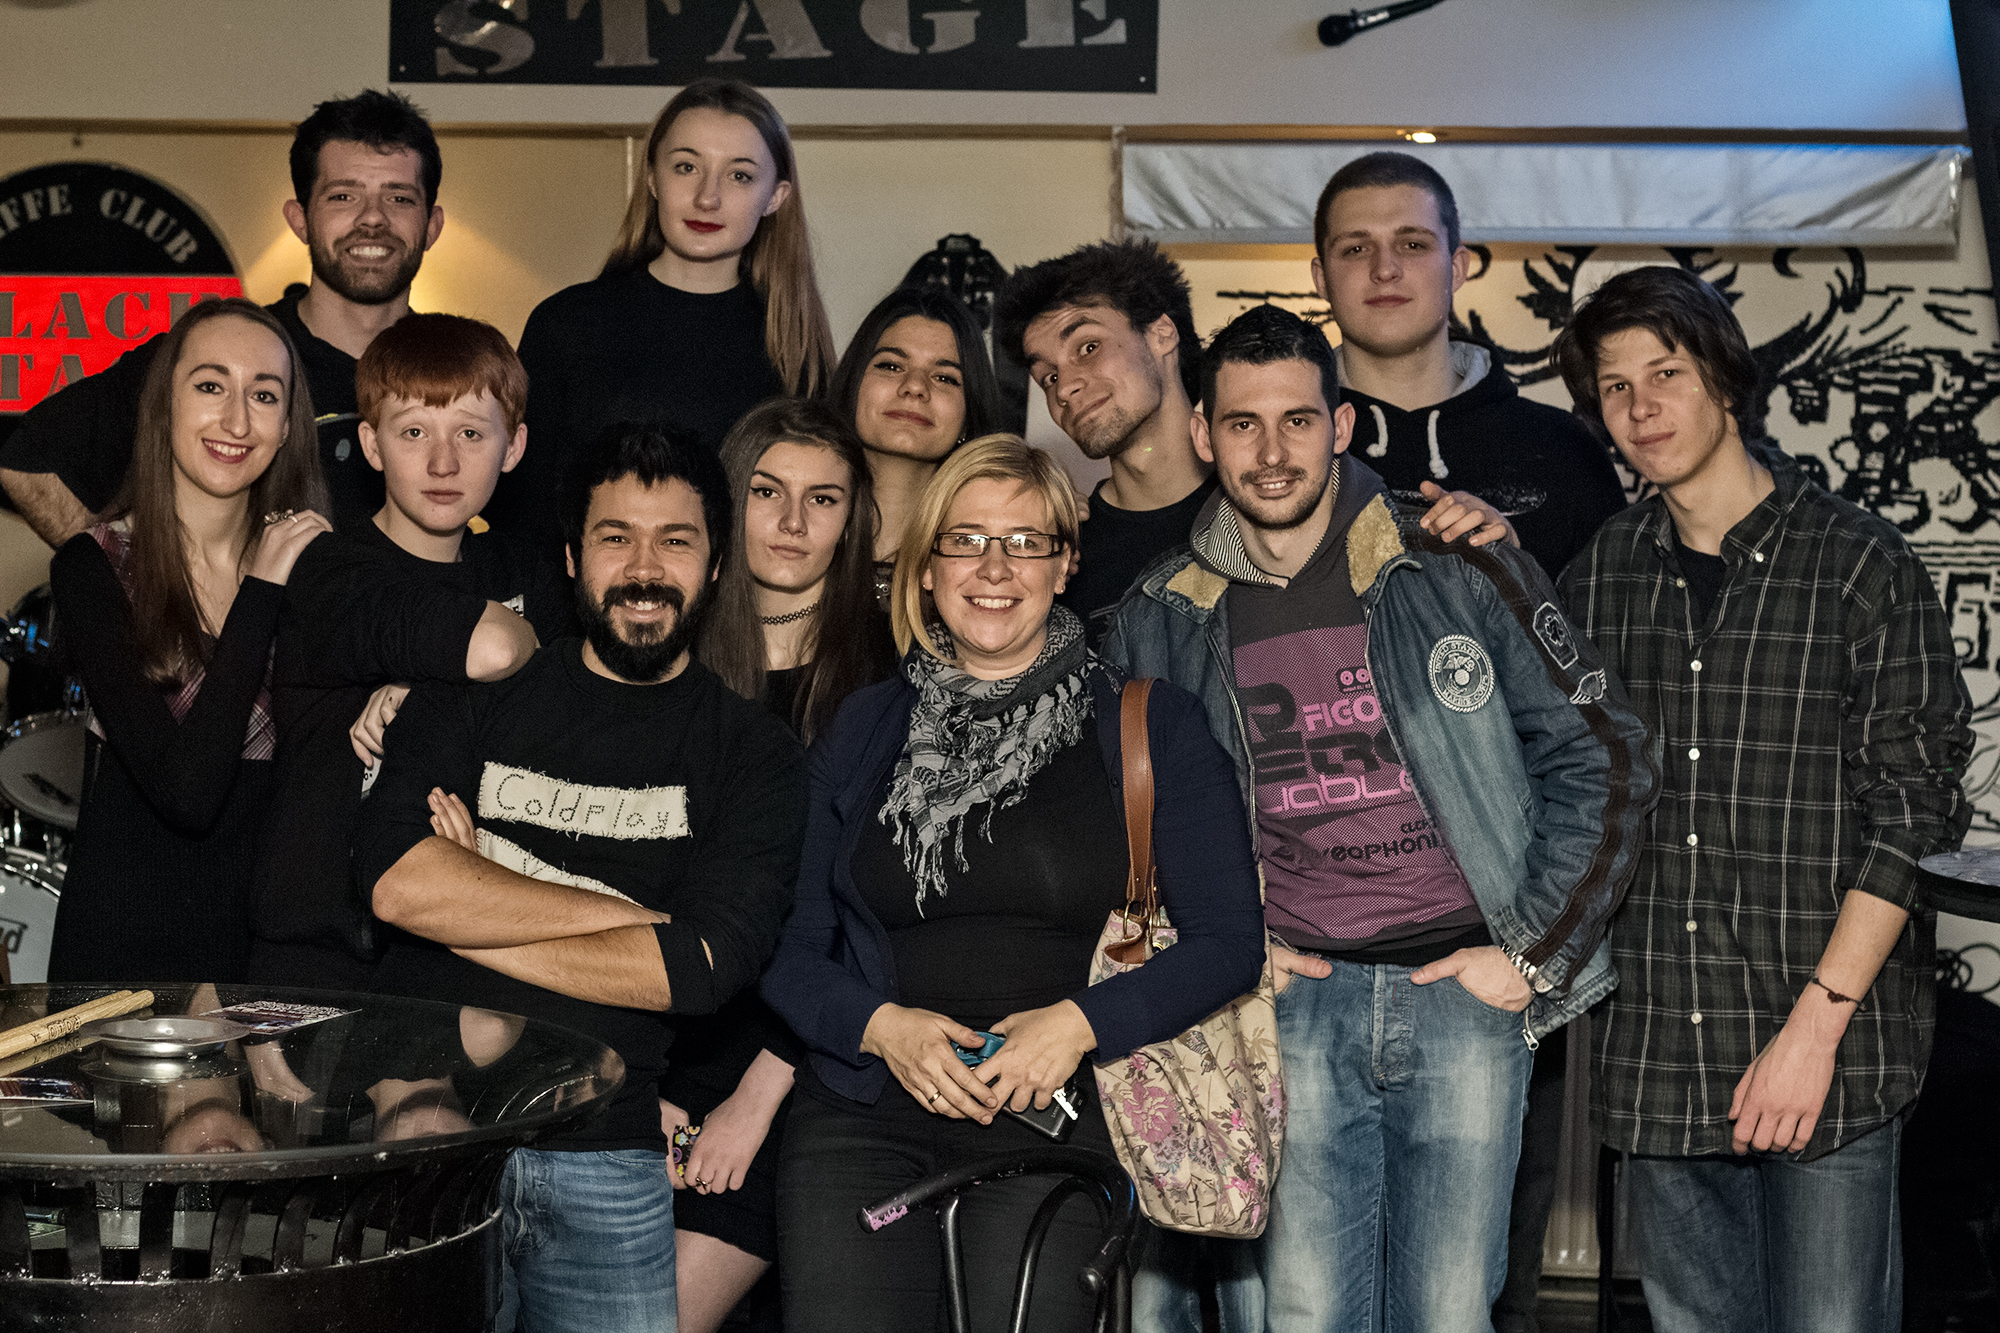 Serbia-January2015-Music workshop, afterconcert picture